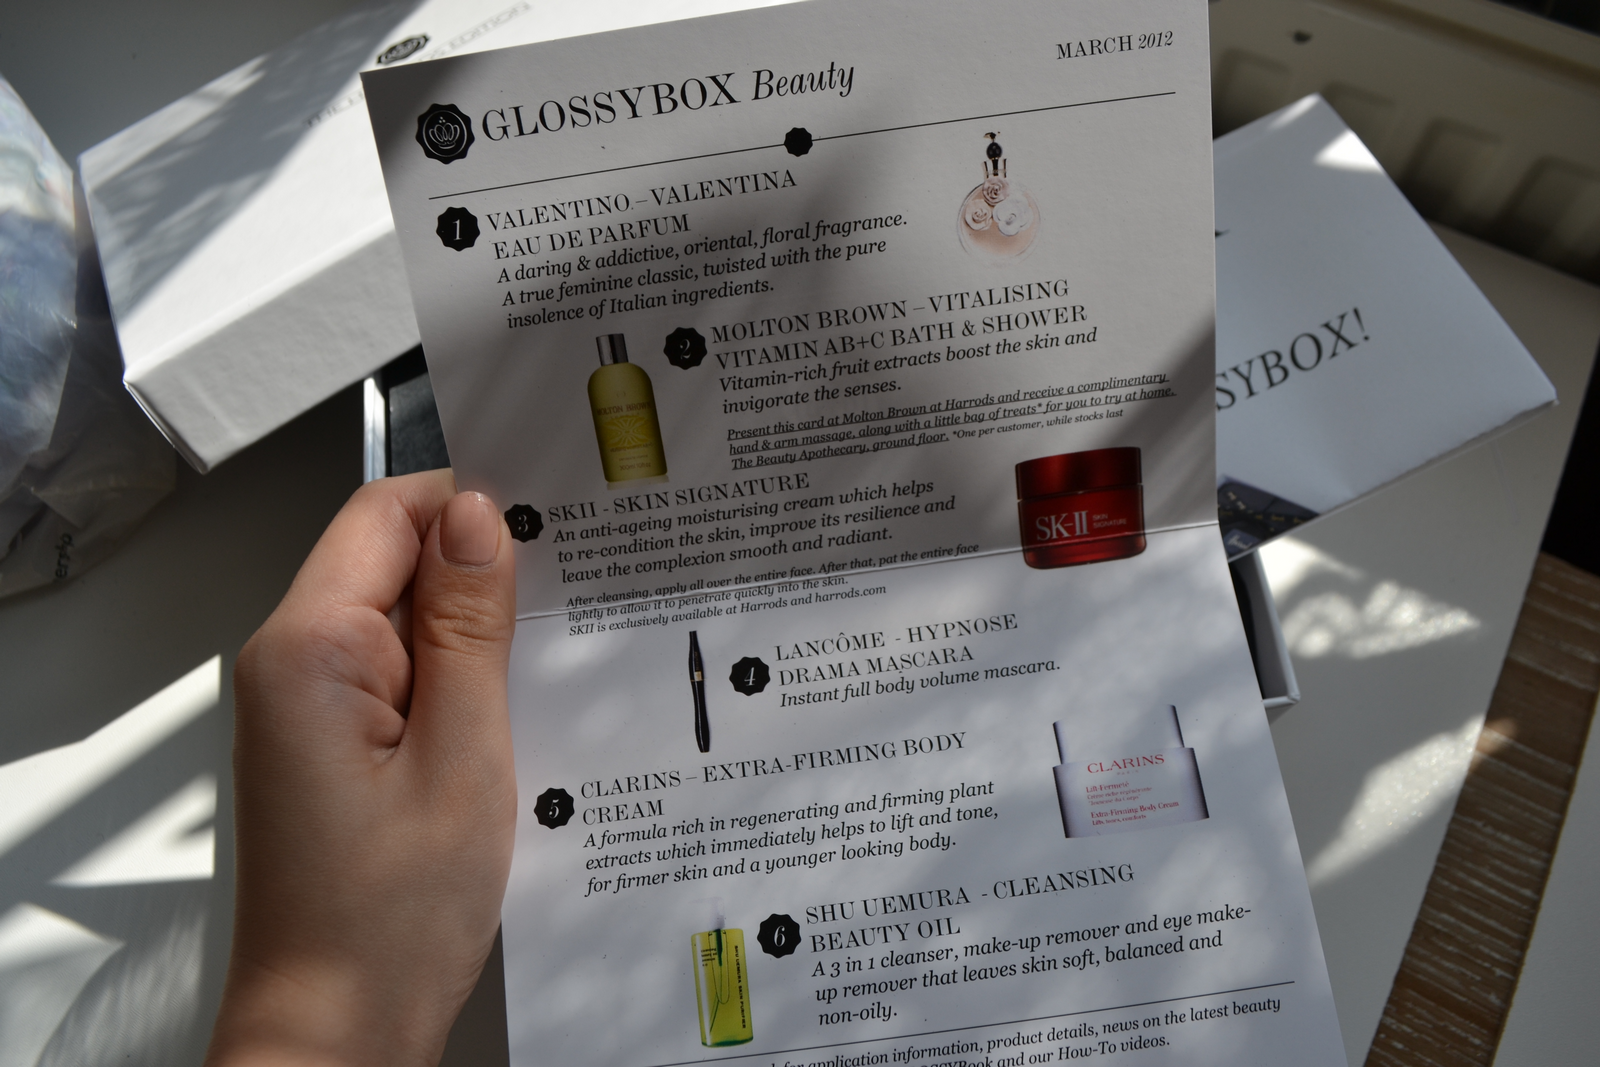 daisybutter - UK Style Blog: glossybox march 2012, harrods edition glossybox